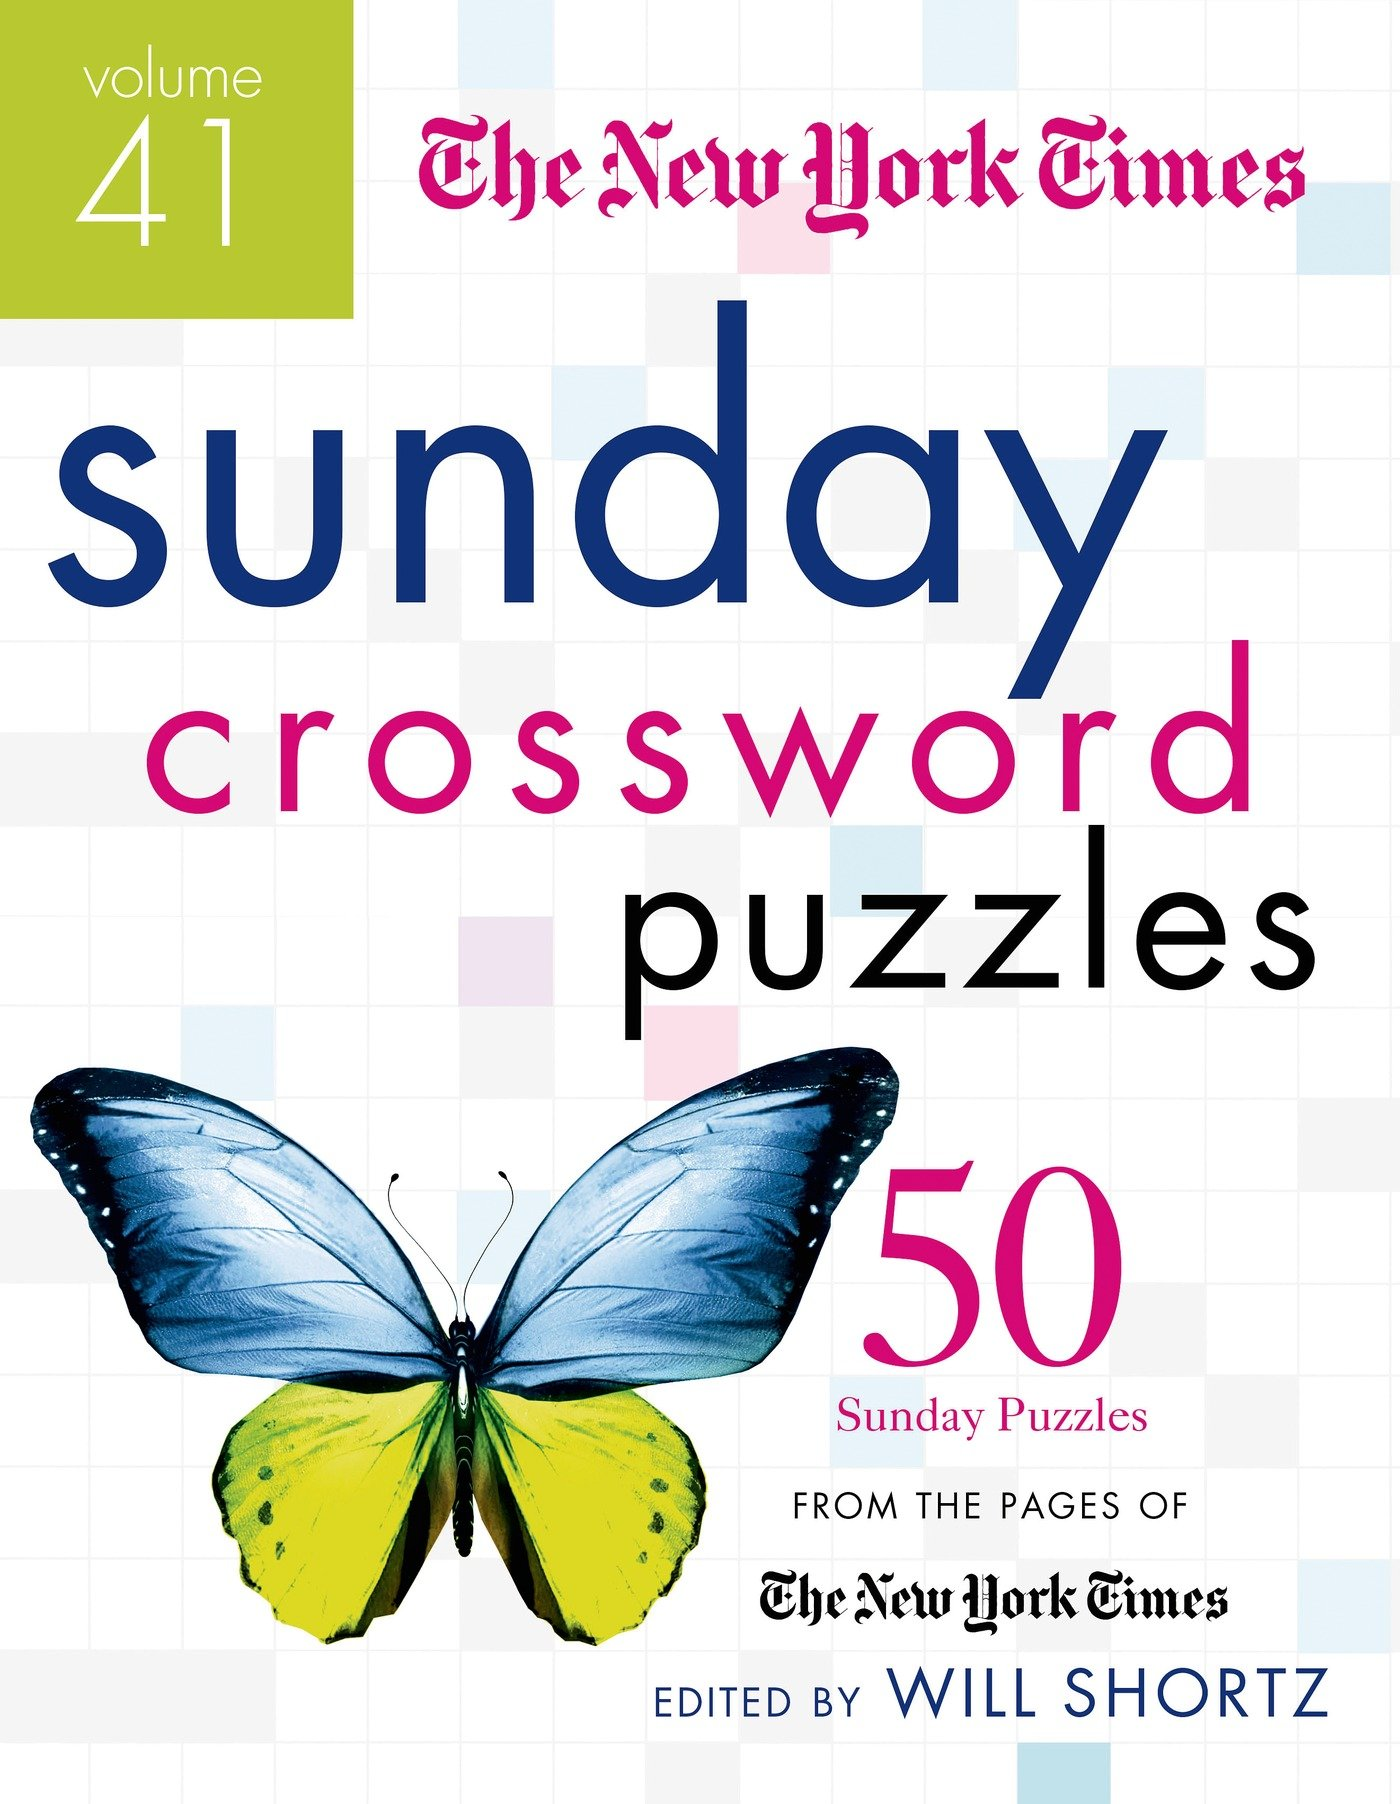 The New York Times Sunday Crossword Puzzles Volume 41 50 Sunday Puzzles from the Pages of The New York Times The New York Times Will Shortz ...  sc 1 st  Amazon.com & The New York Times Sunday Crossword Puzzles Volume 41: 50 Sunday ... 25forcollege.com